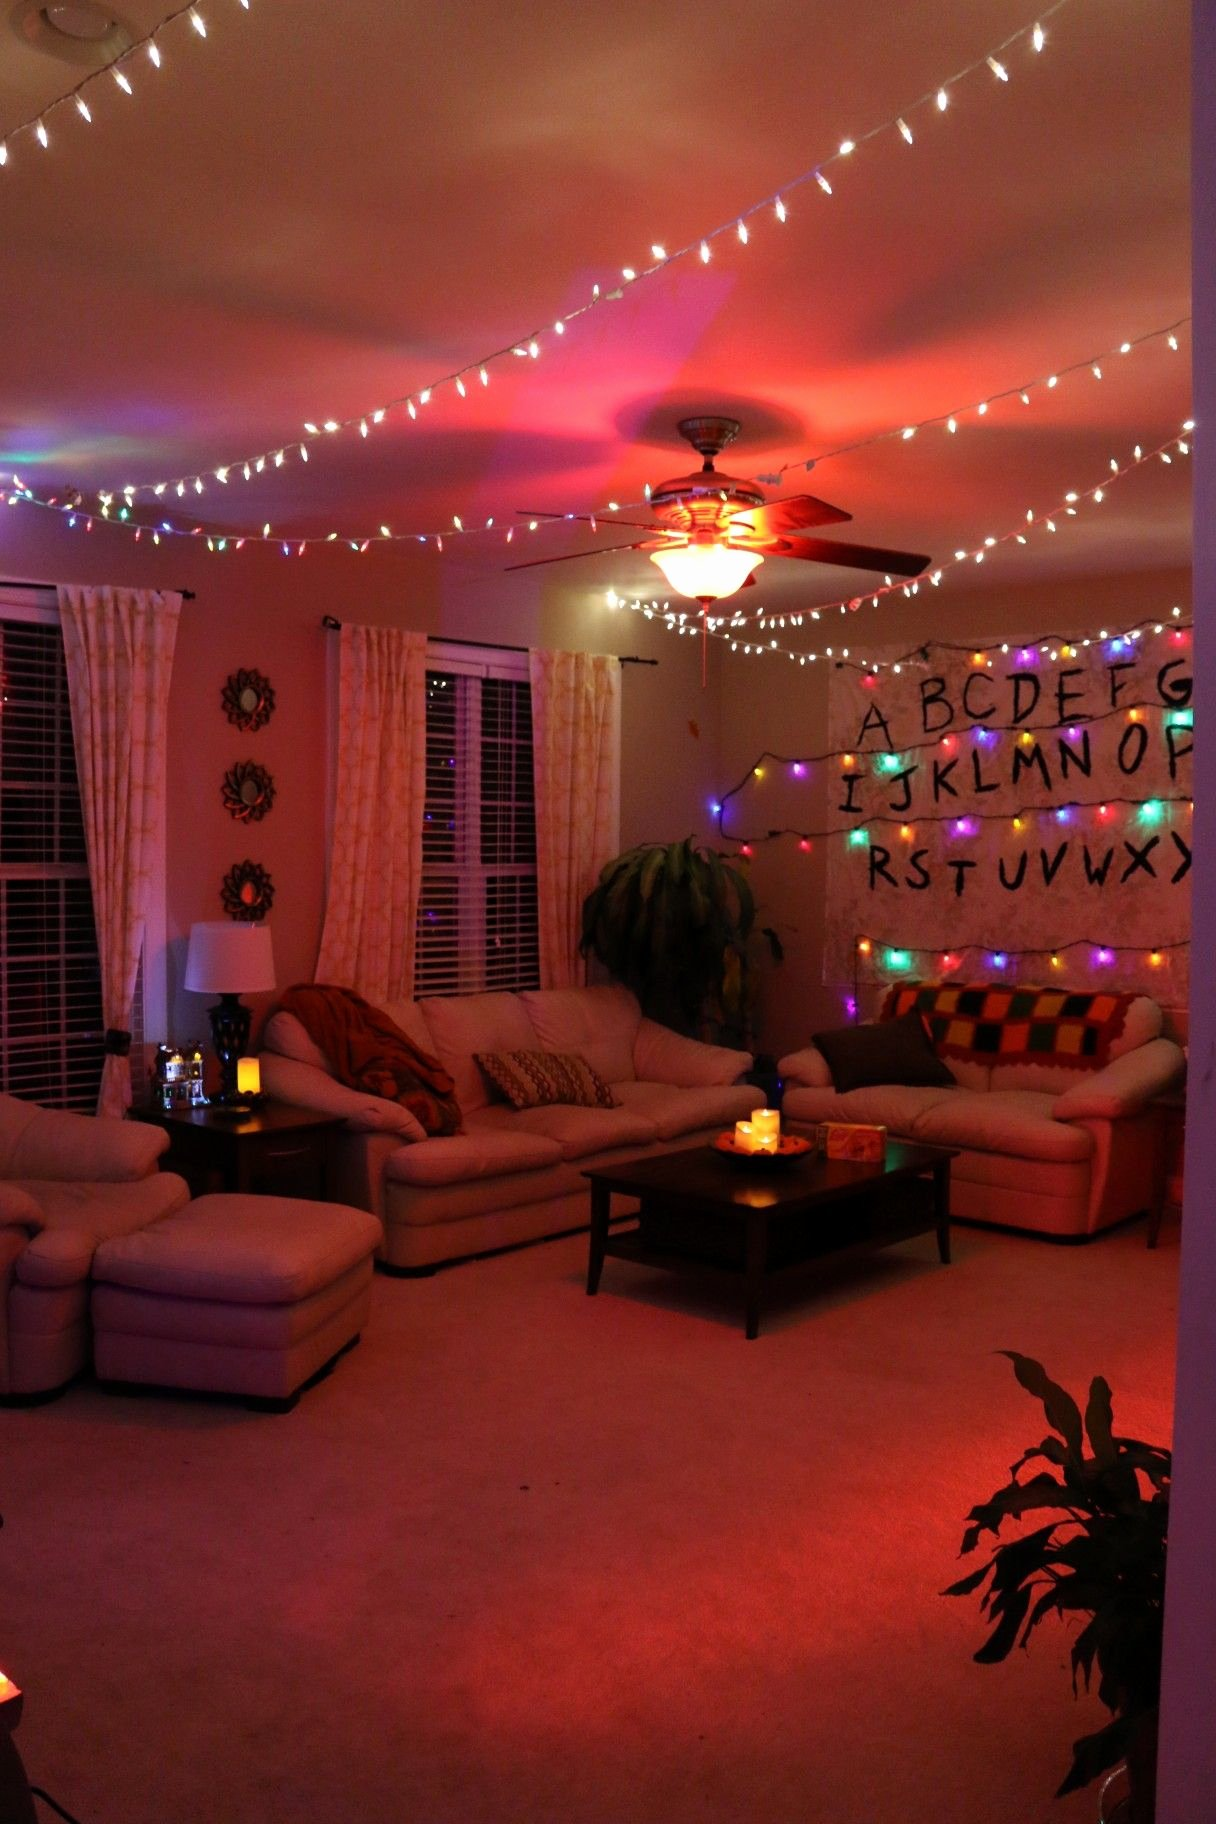 Birthday Decoration Ideas for Living Room Best Of Another Photo Of Stranger Things themed Living Room